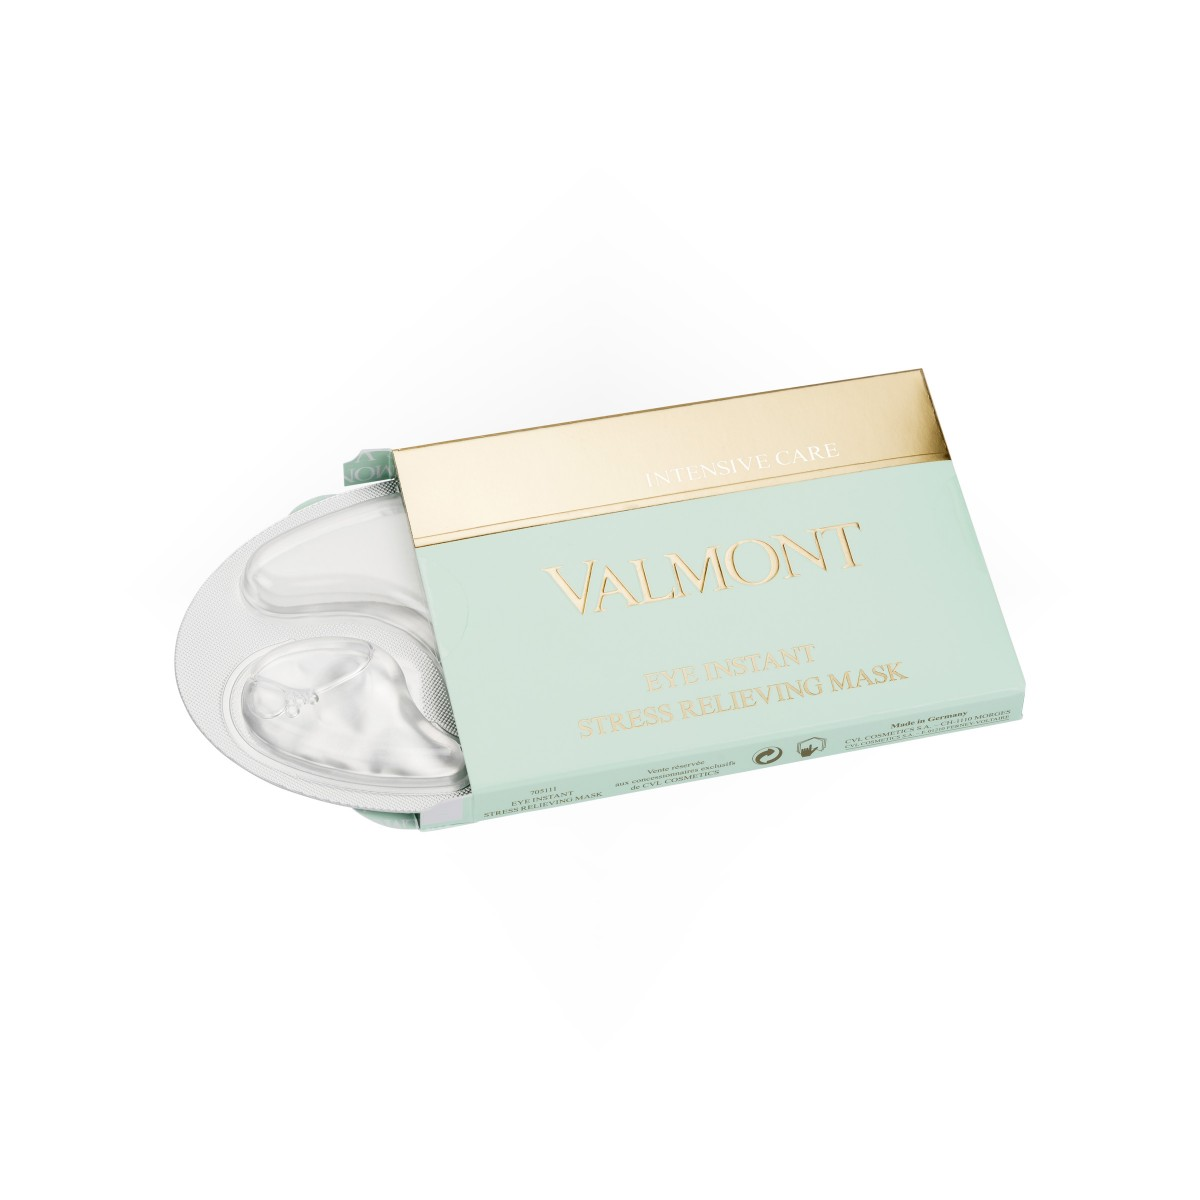 Eye Instant Stress Relieving Mask (1 applicazione)